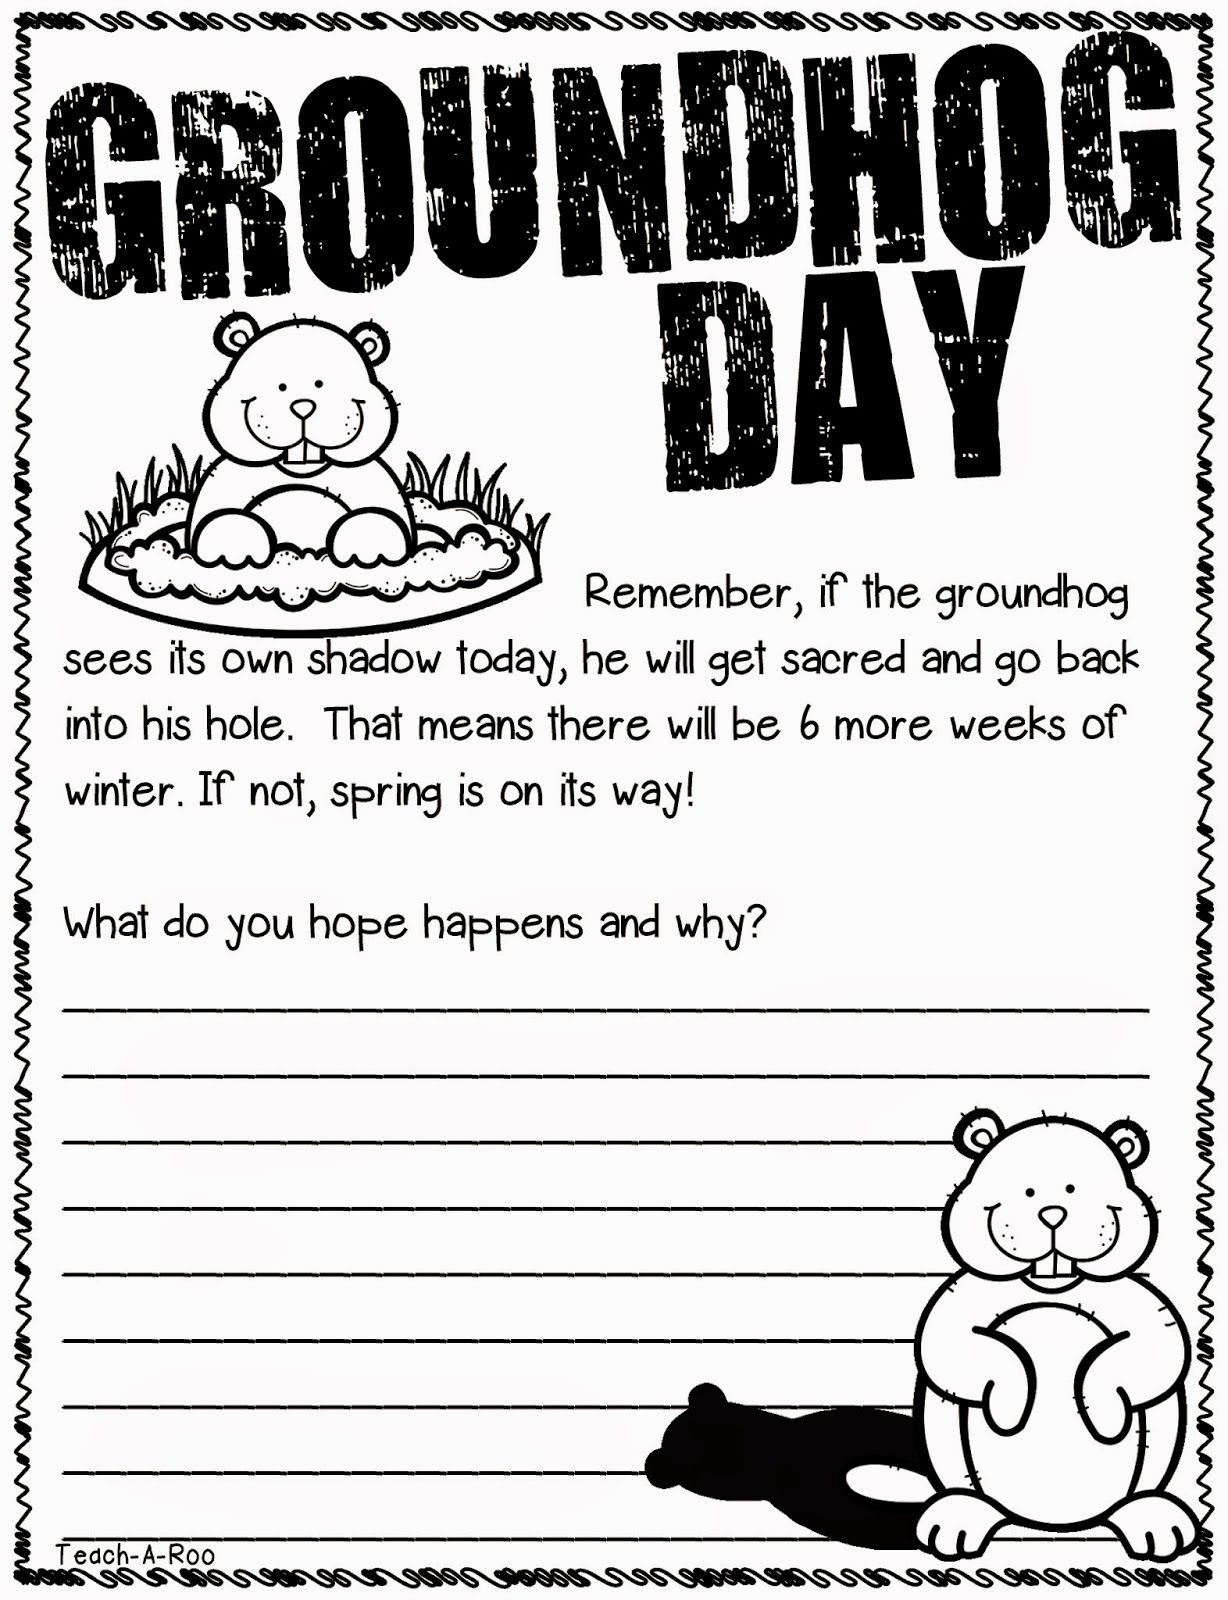 small resolution of Teach-A-Roo: Groundhogs Make Me Giggle!   Groundhog day